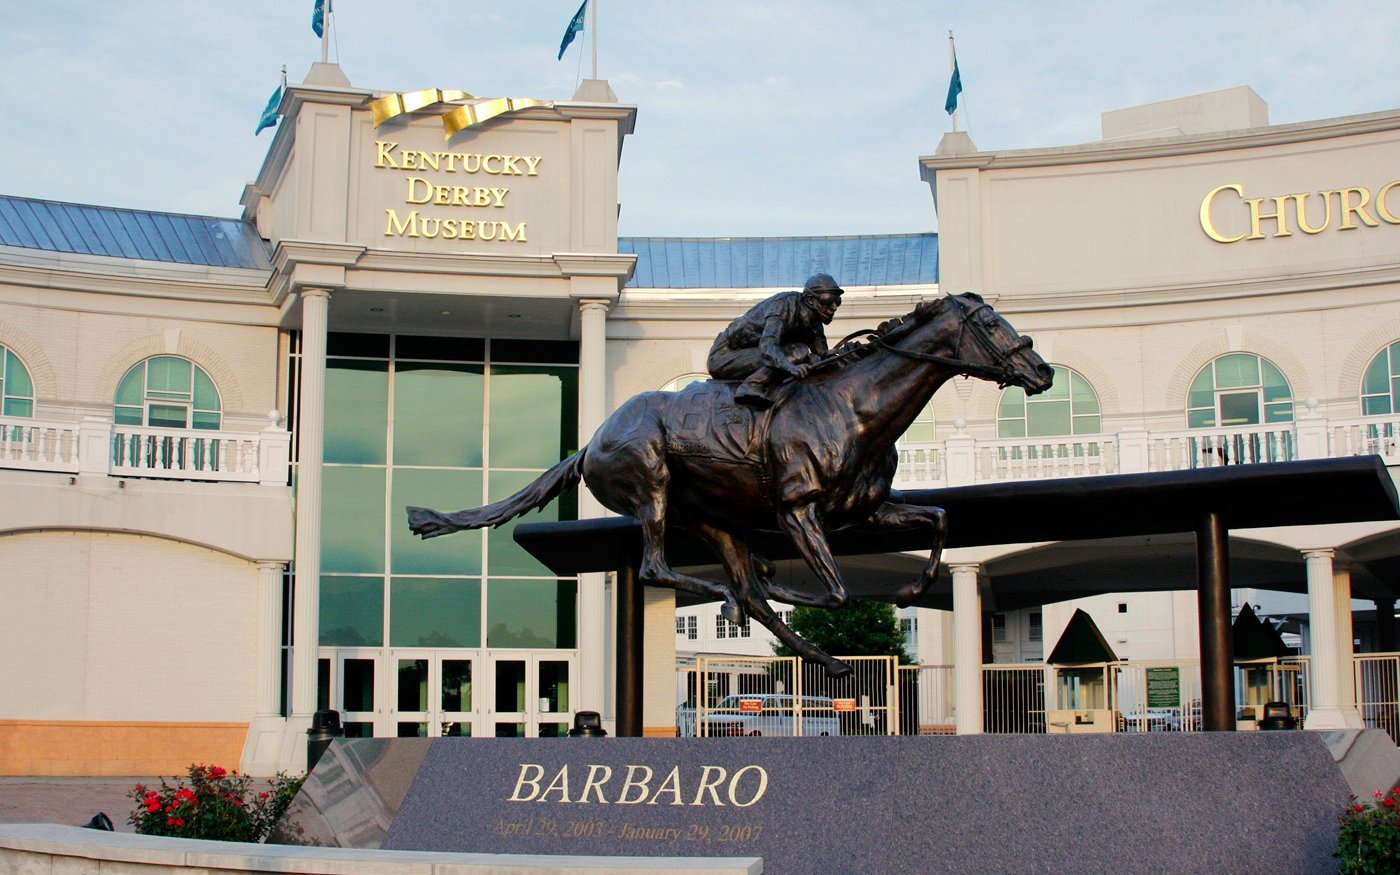 Kentucky Derby Museum announces new staff appointments